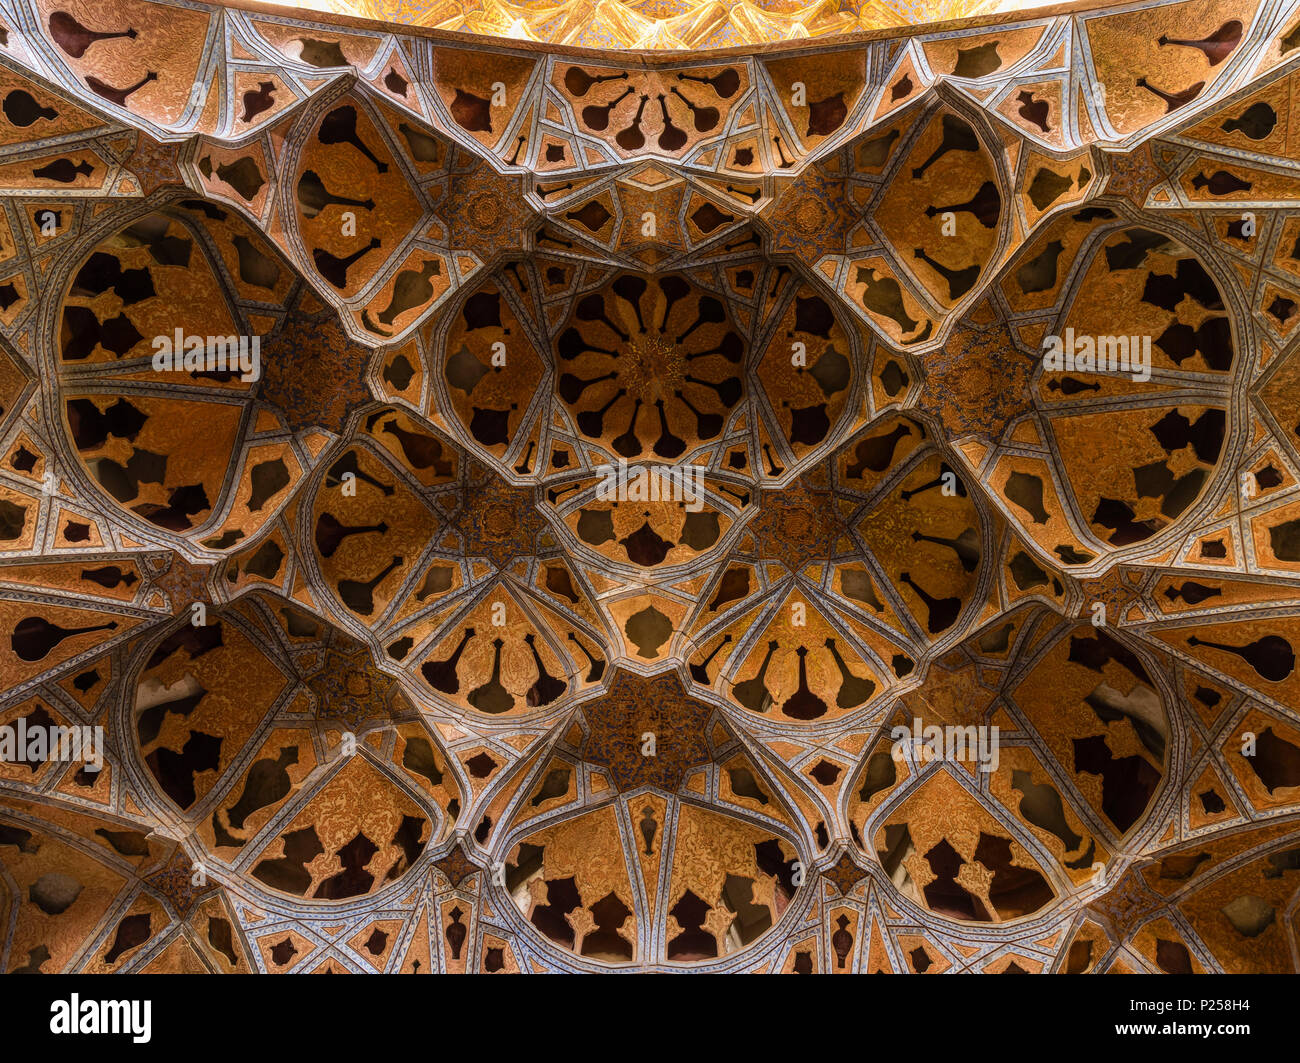 Open-work ceiling ornament in Ali Qapu Palace in Isfahan Stock Photo